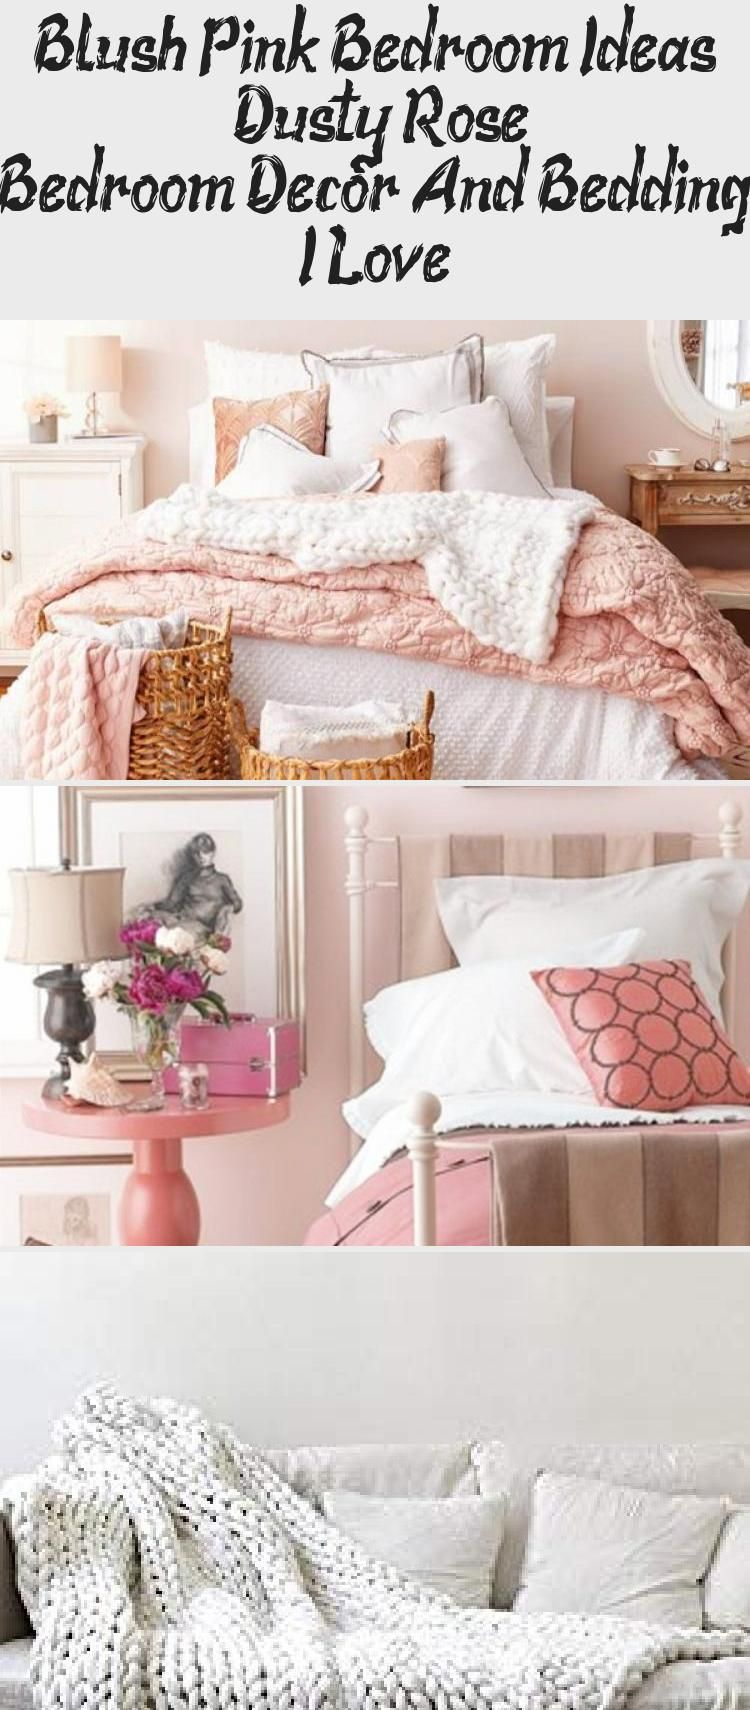 Redecorating My Bedroom In Dusty Rose Pink Colors • These dusty ...